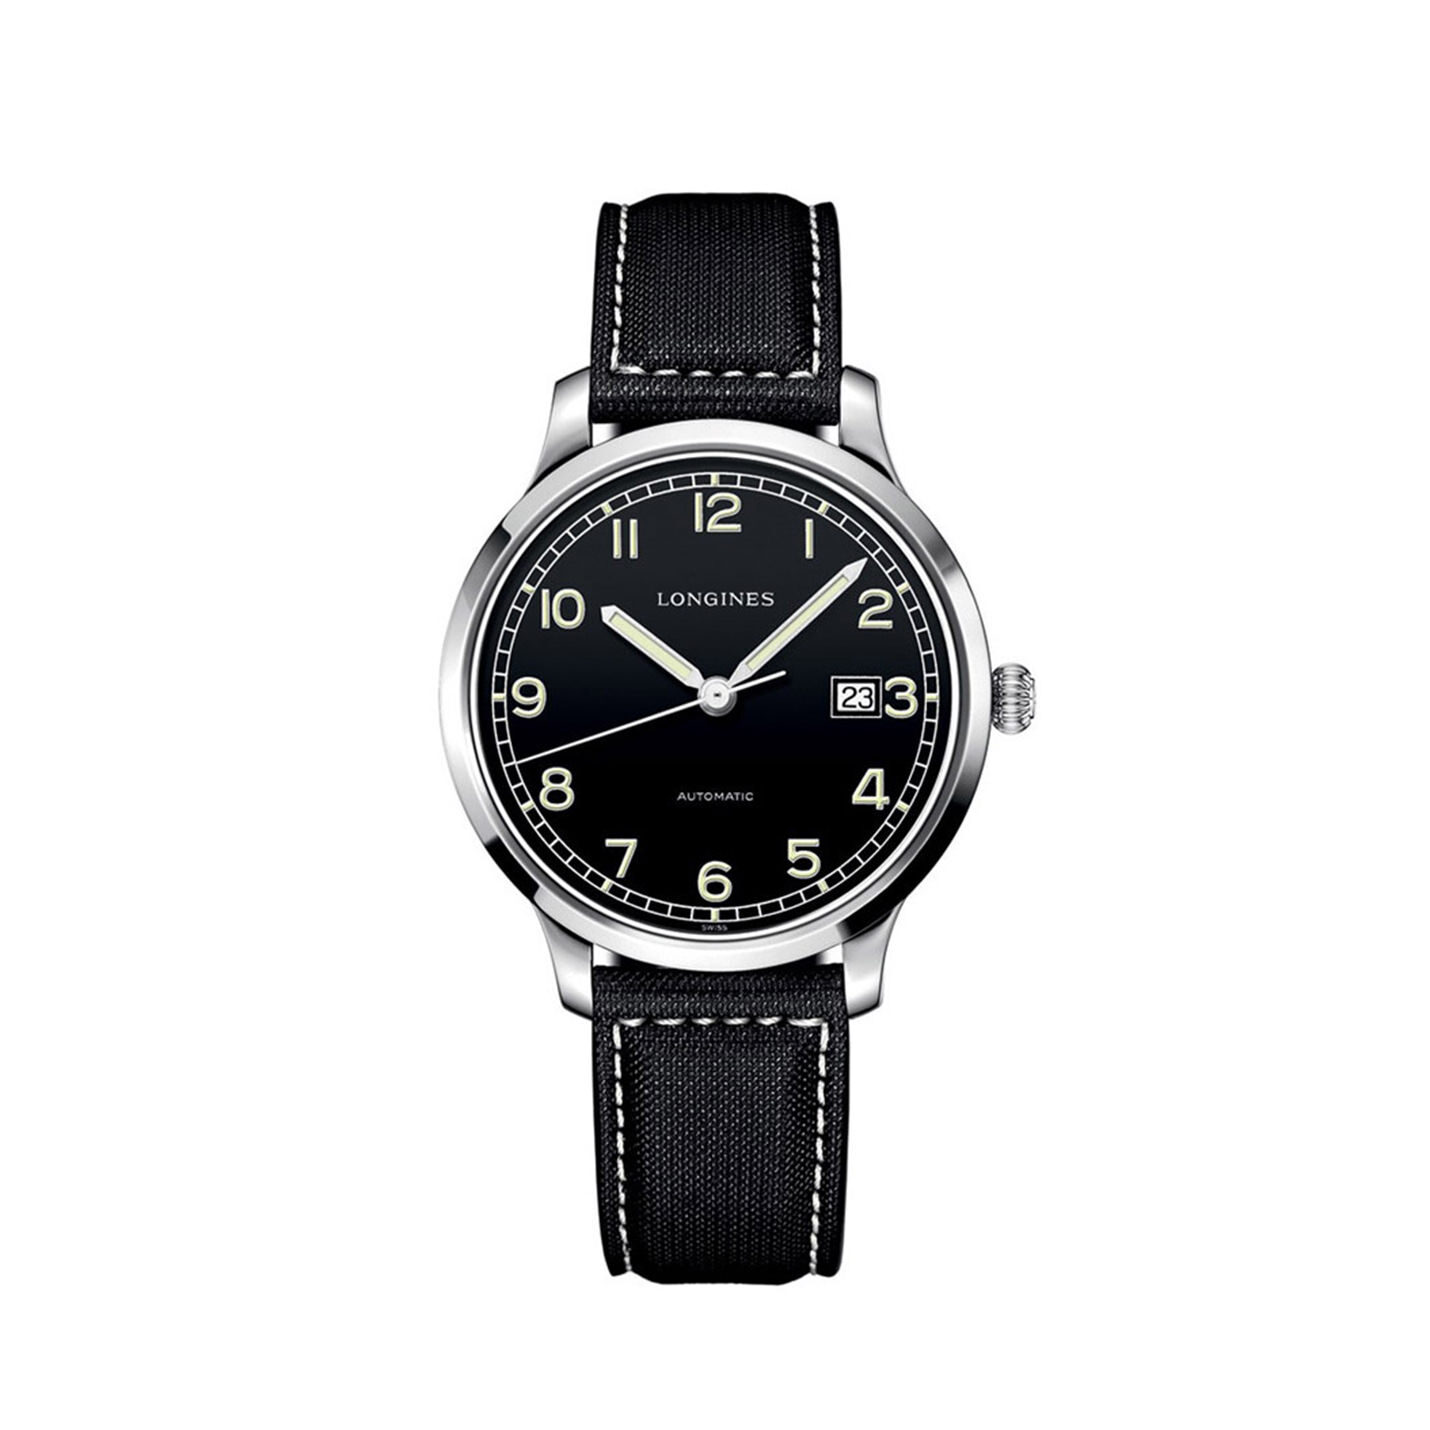 Longines Heritage Collection – 1938 Military Watch